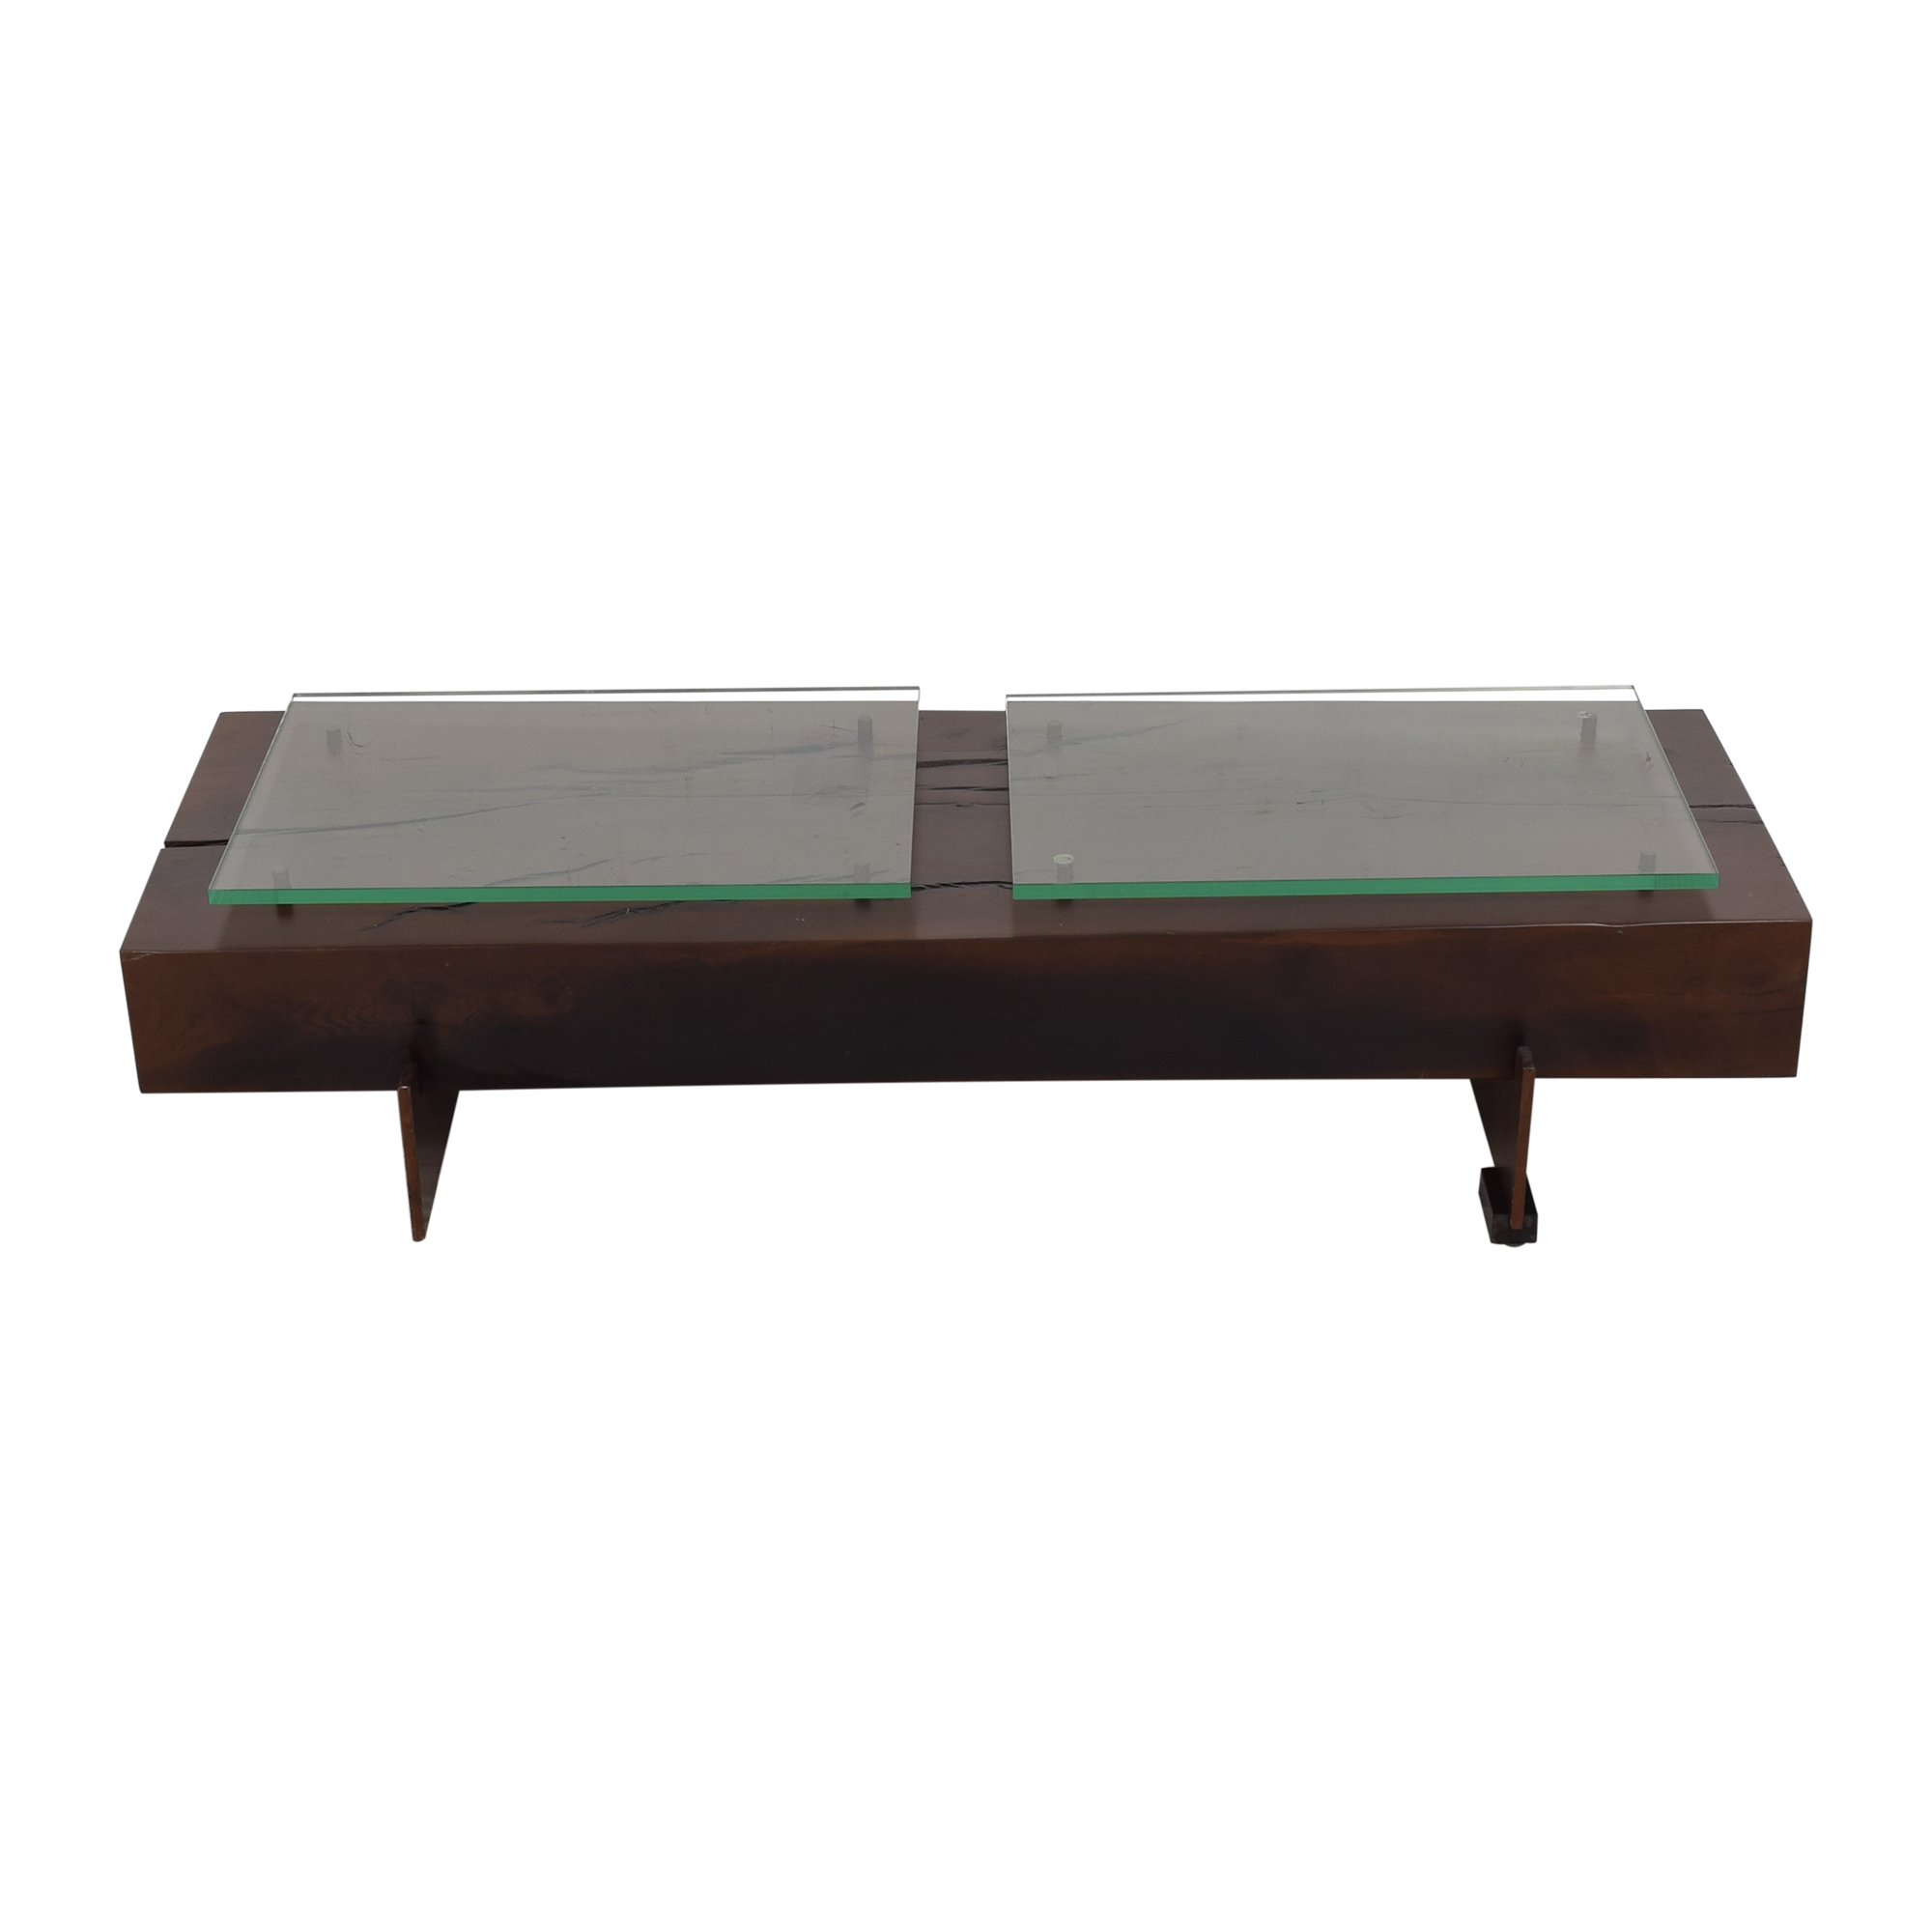 Moura Starr Iguatemi Coffee Table With Glass ma